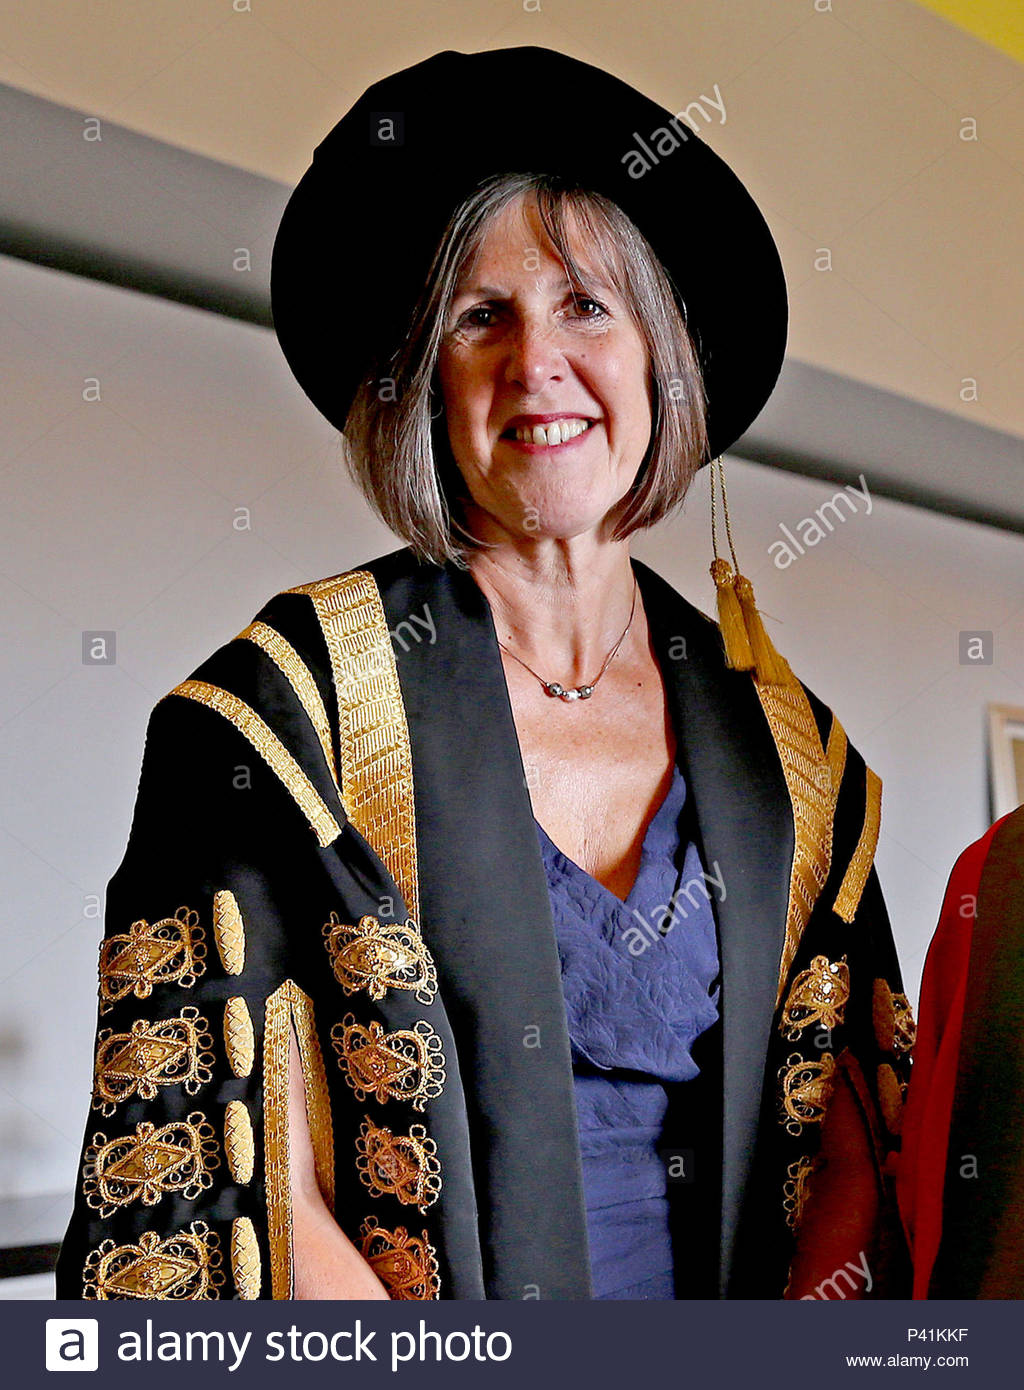 """File photo dated 22/07/15 of University of Universities UK president Professor Dame Janet Beer, who has said that there is a """"postcode lottery"""" when it comes to the current financial advice available. Universities UK said students need to be given clearer information about tuition fees and student loan repayments as some students may be put off going to university due to concerns around overwhelming debt. - Stock Image"""